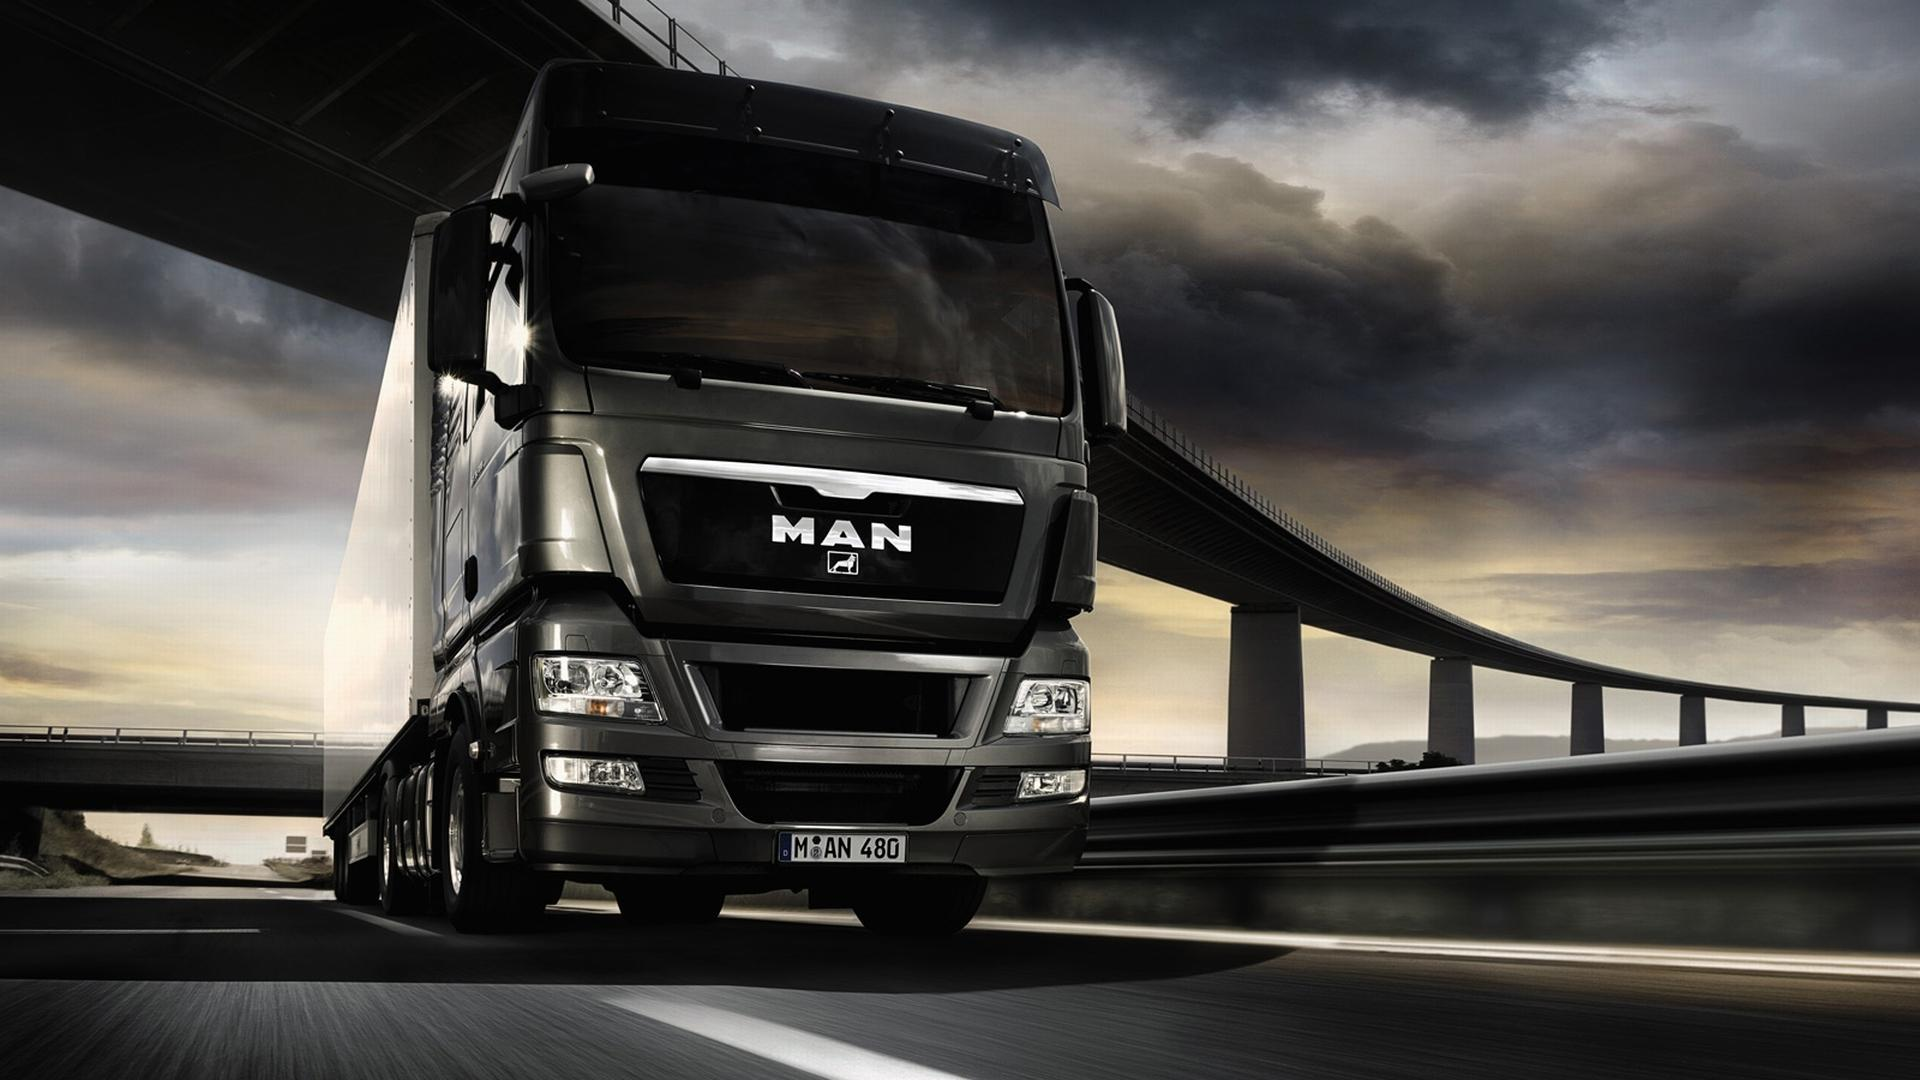 MAN wallpapers HD quality